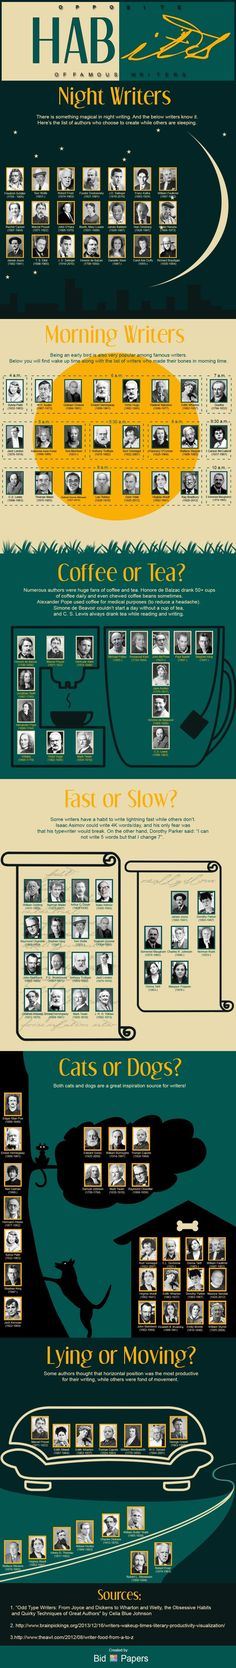 Daily habits of over 100 famous authors (infographic)